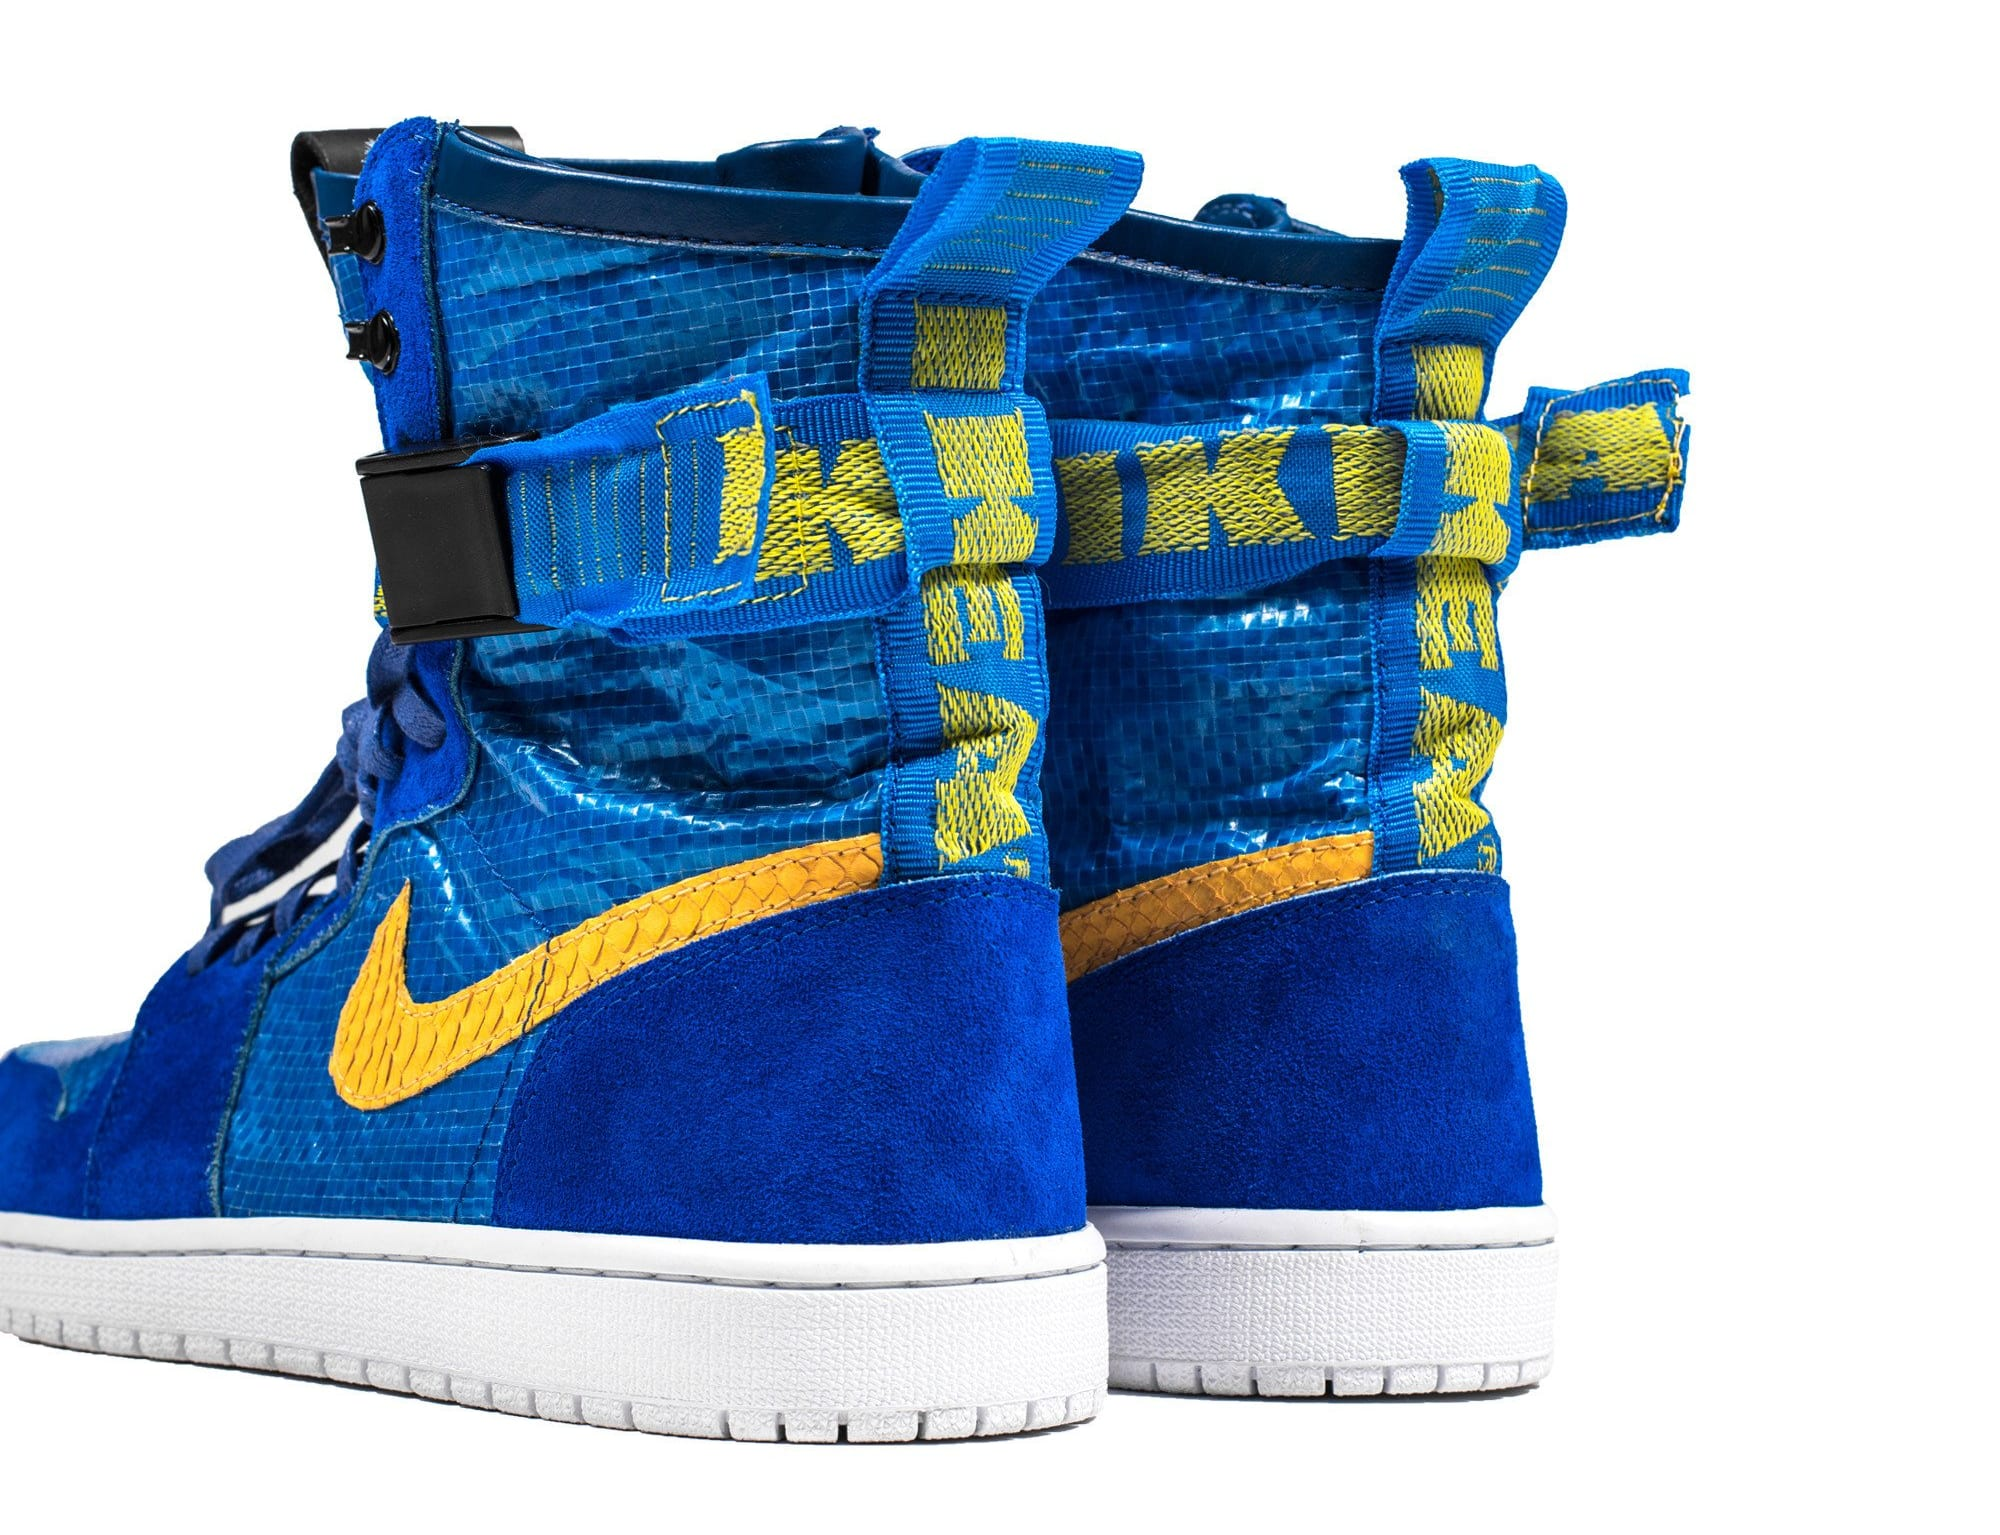 Ikea Bags Ikea Air Jordan 1 High 1 500 Sole Collector